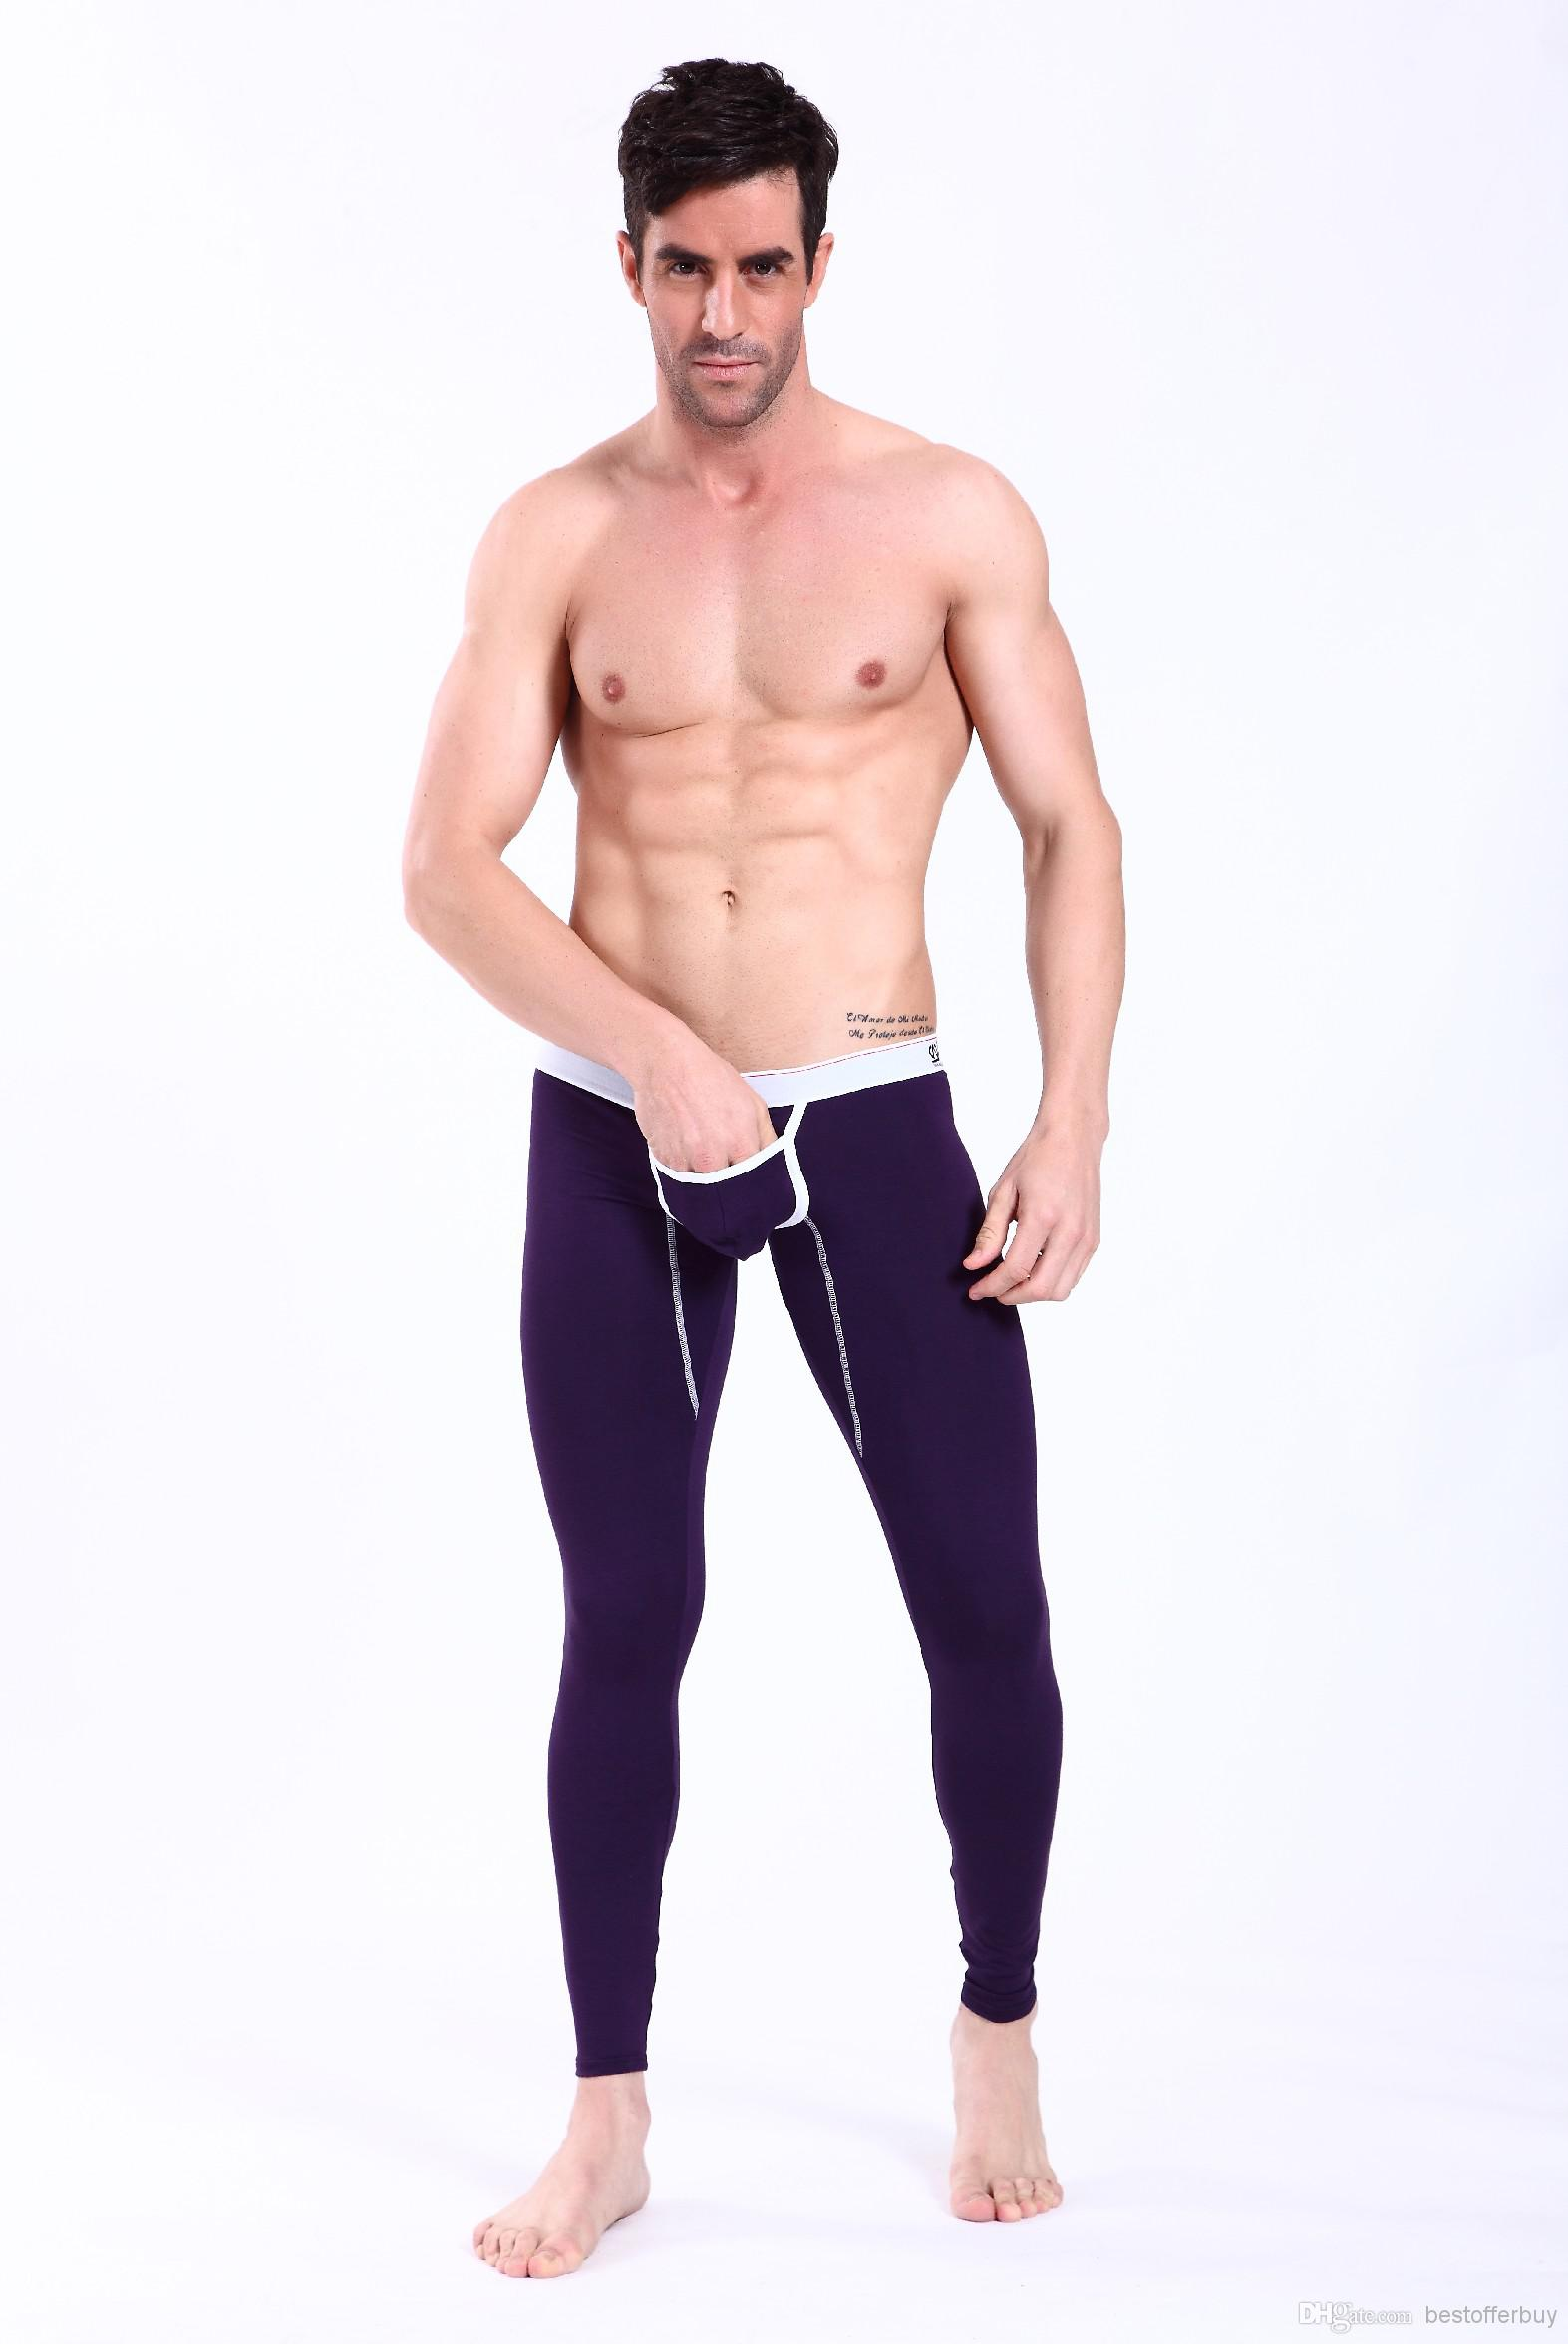 thermal guys Hanes men's thermals looking for thermal underwear that takes comfort and warmth to the next level we've got you covered created with soft, cotton-rich fabric and made with sturdy seam construction for added strength and durability, our men's thermals are made to keep you warm for many winters to come.